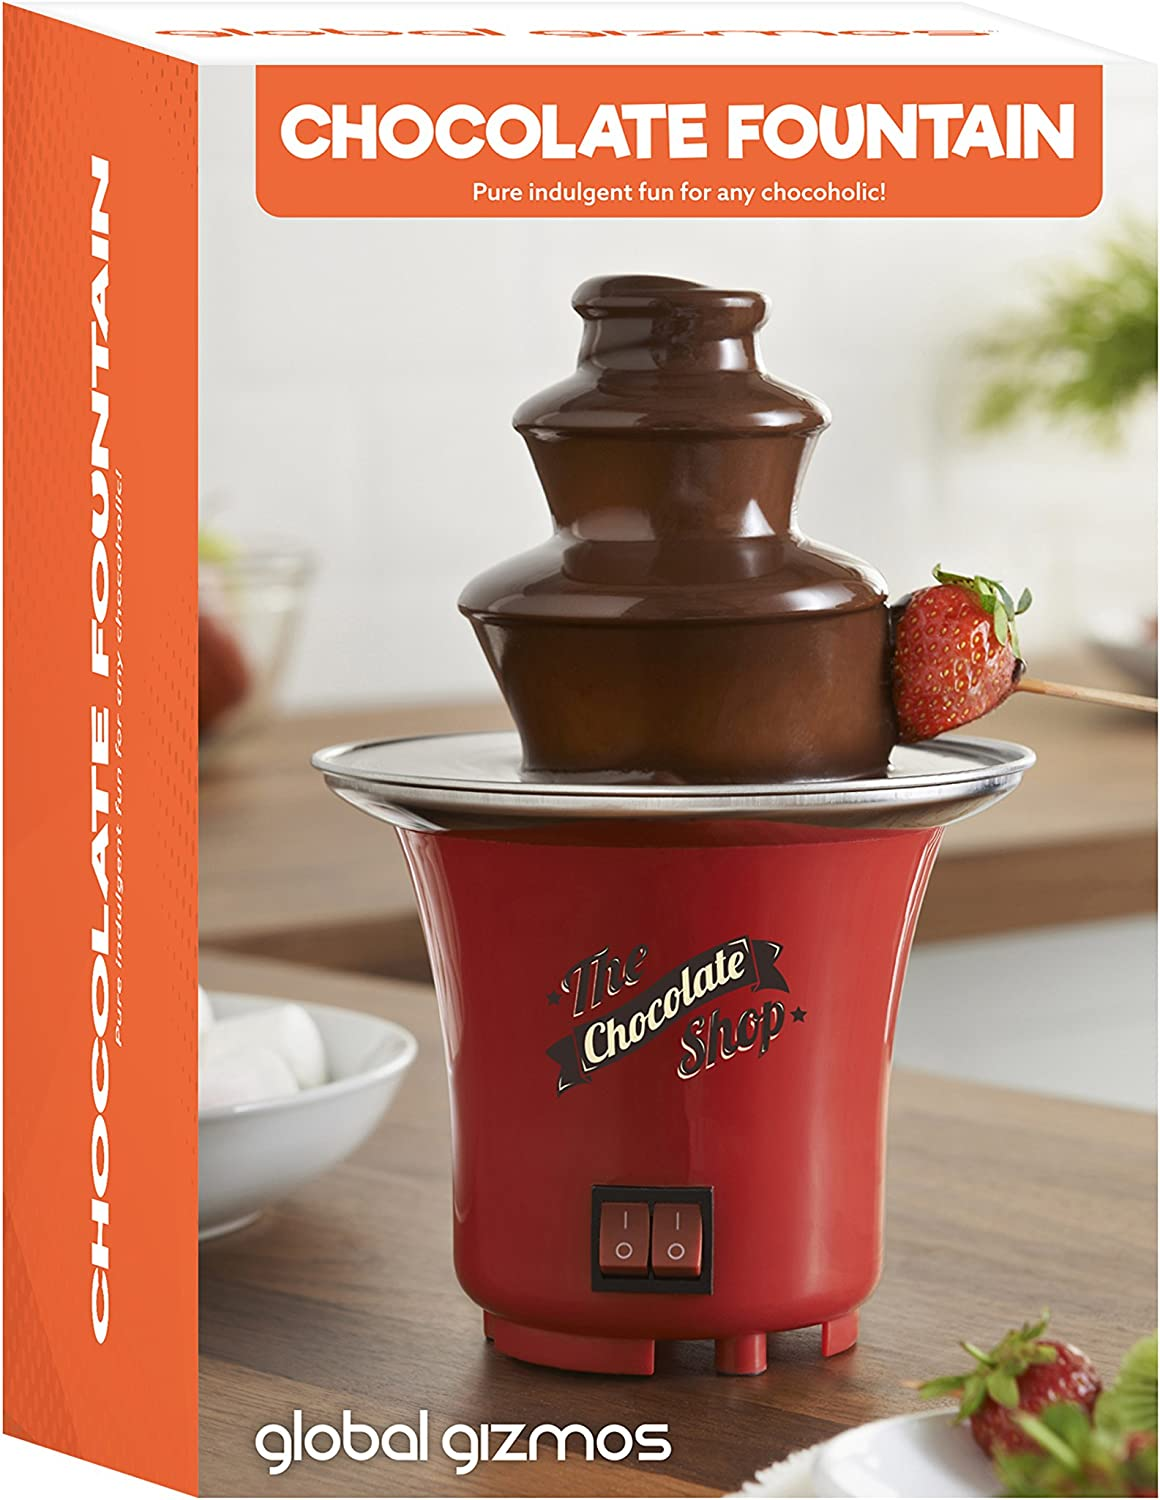 Global Gizmos Chocolate Fountain Just Melt /& Enjoy Electronically operated